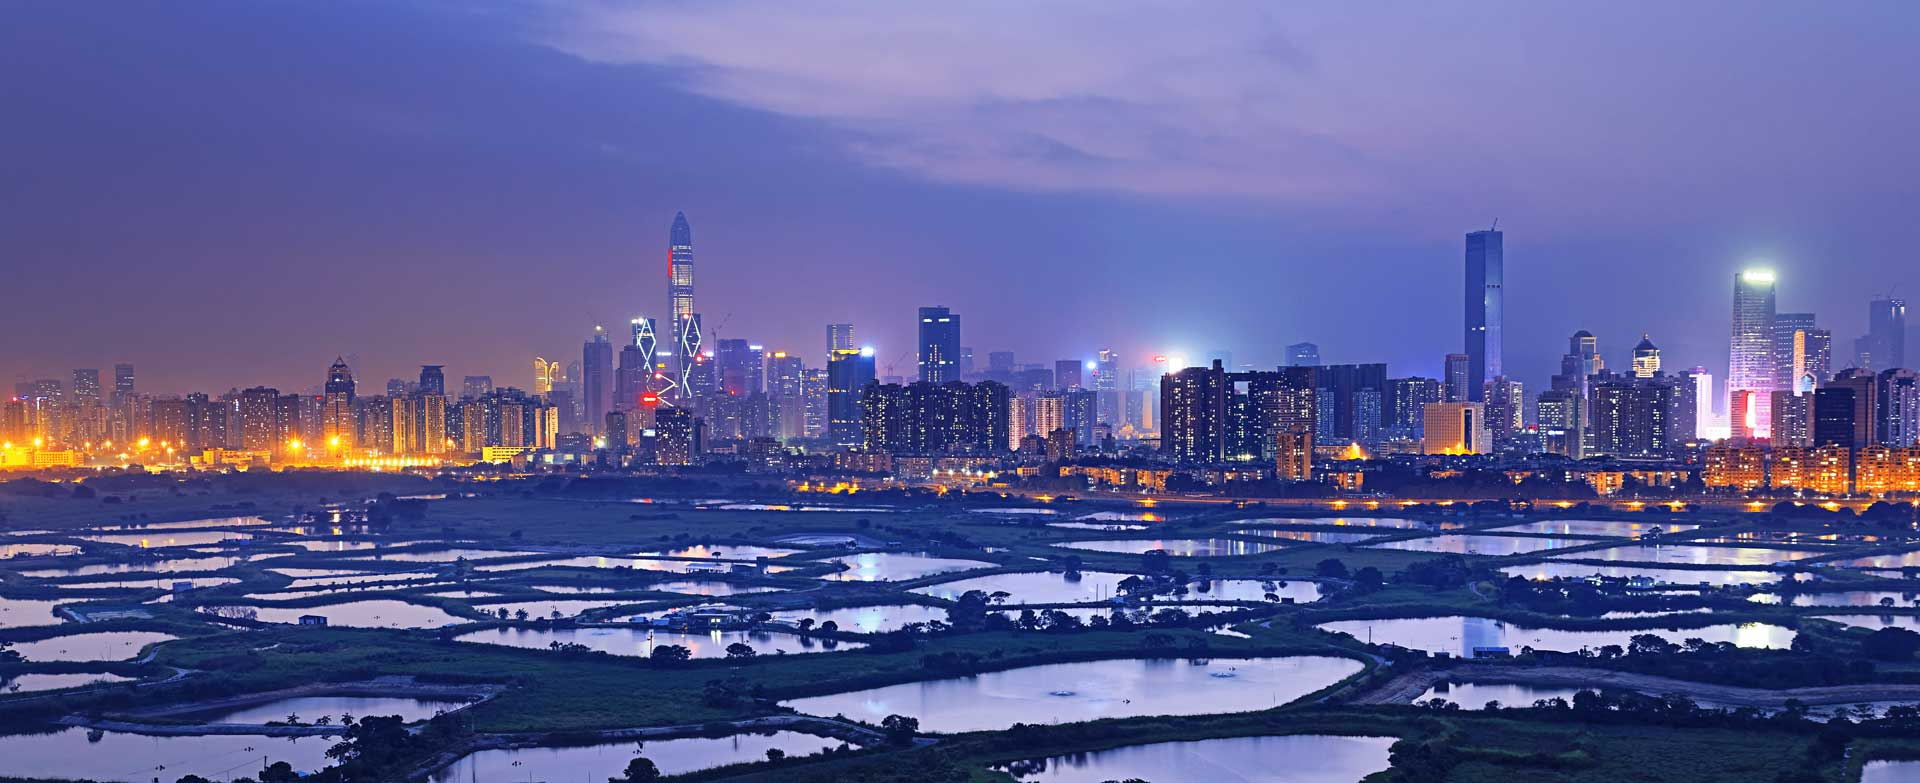 Wetland serves as the border between Hong Kong to the south and Shenzhen to the north.